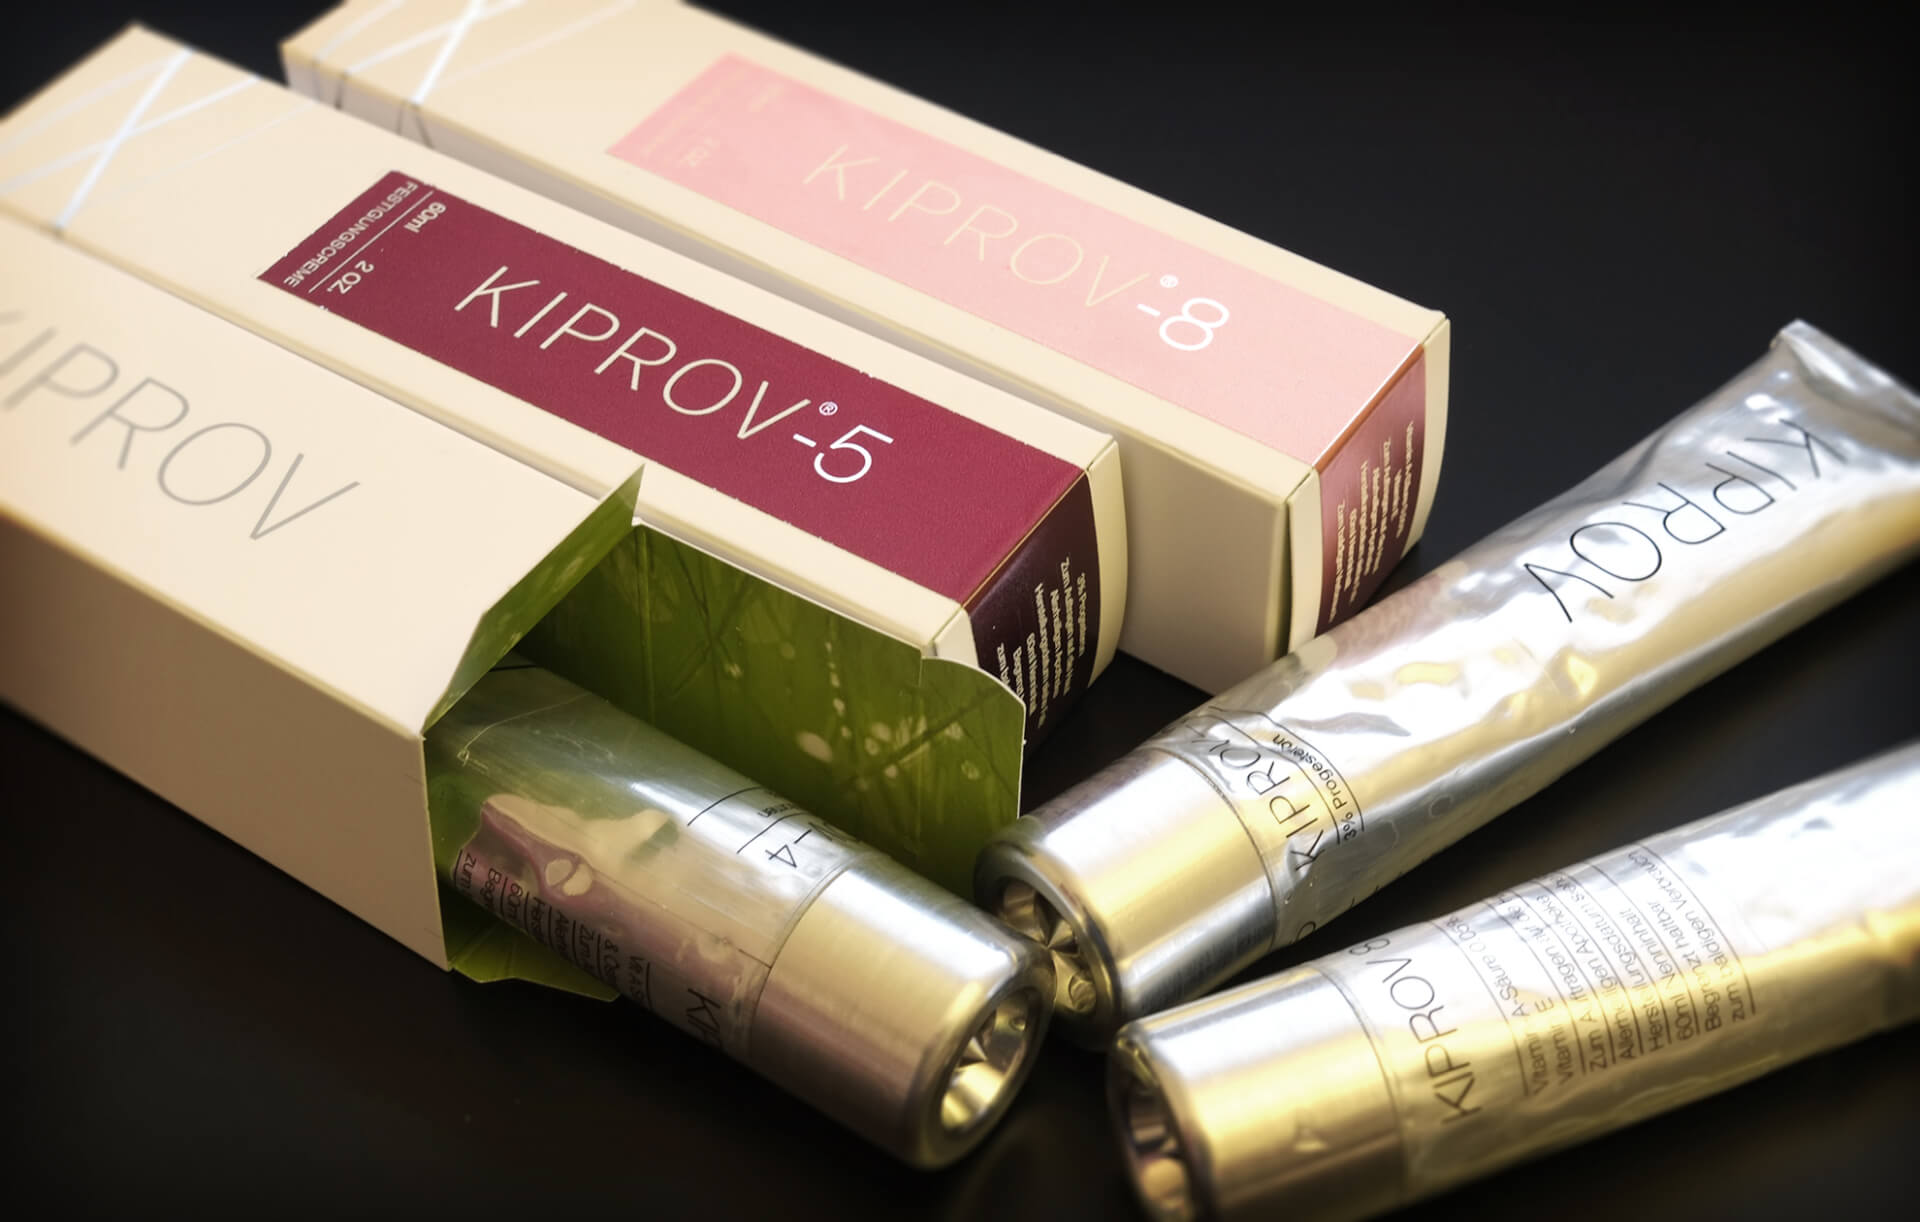 modern packaging for kiprov cosmetics, packaging design